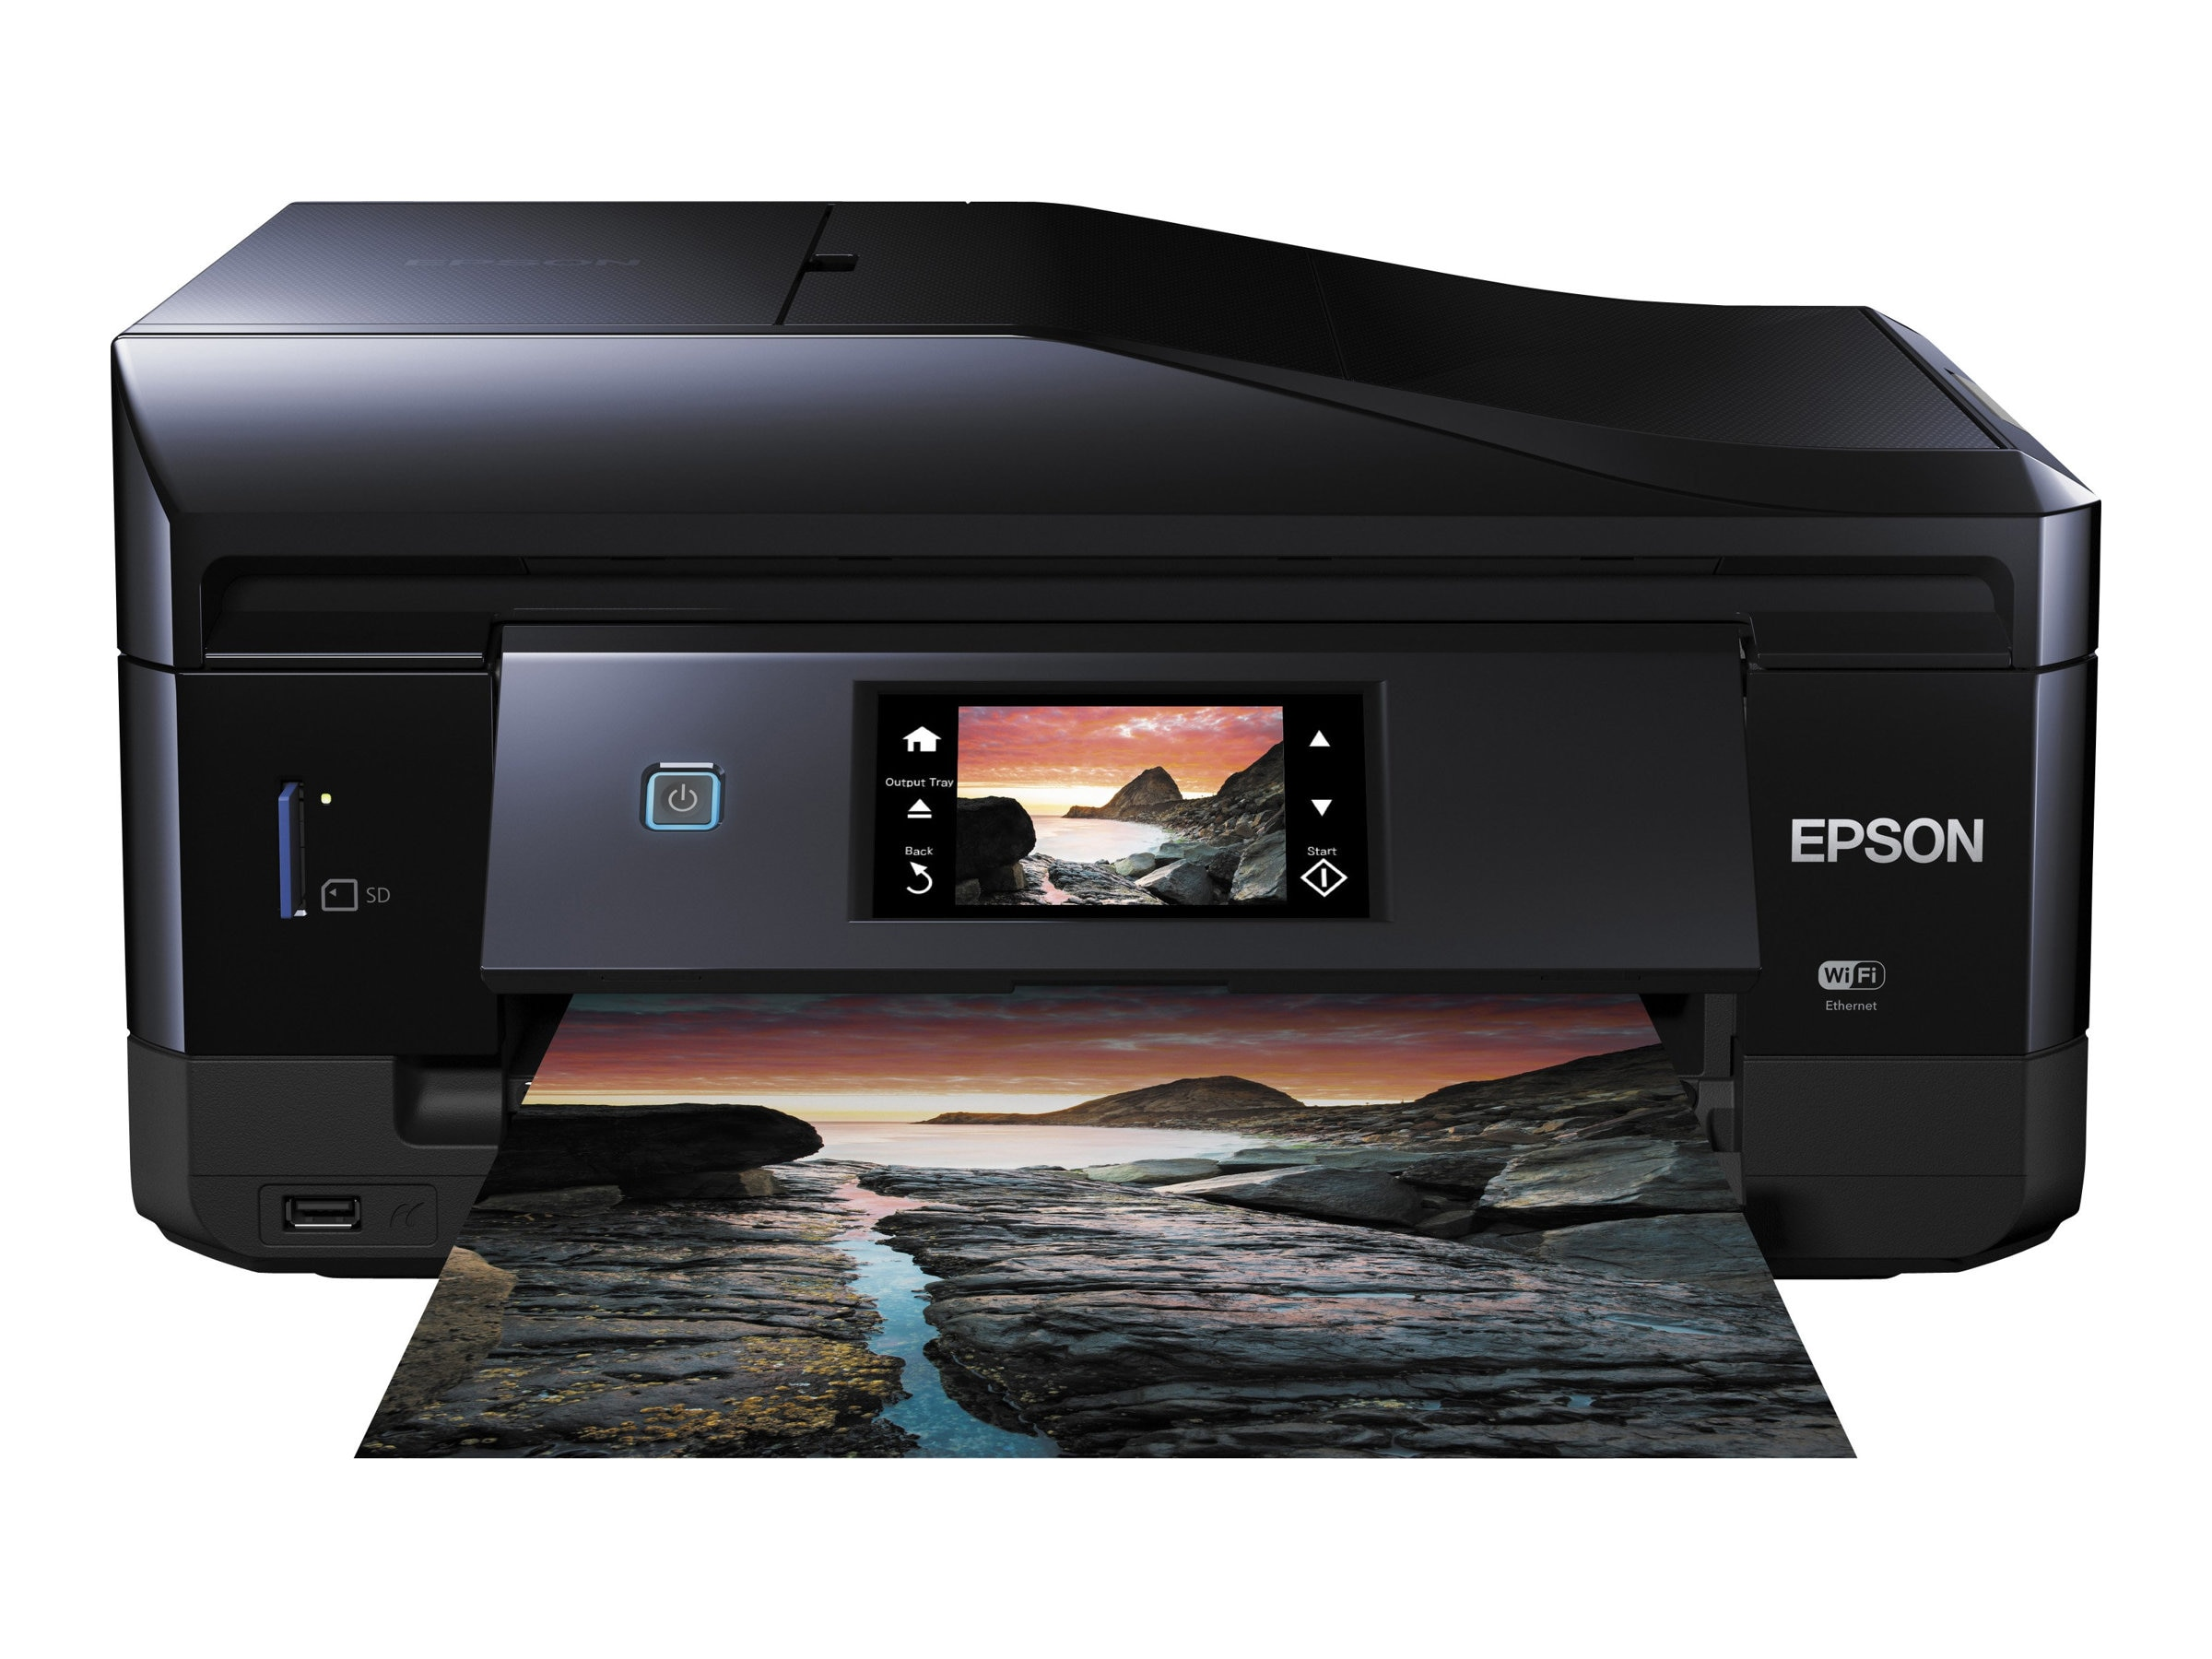 Epson Expression Photo XP-860 All-in-One Printer, C11CD95201